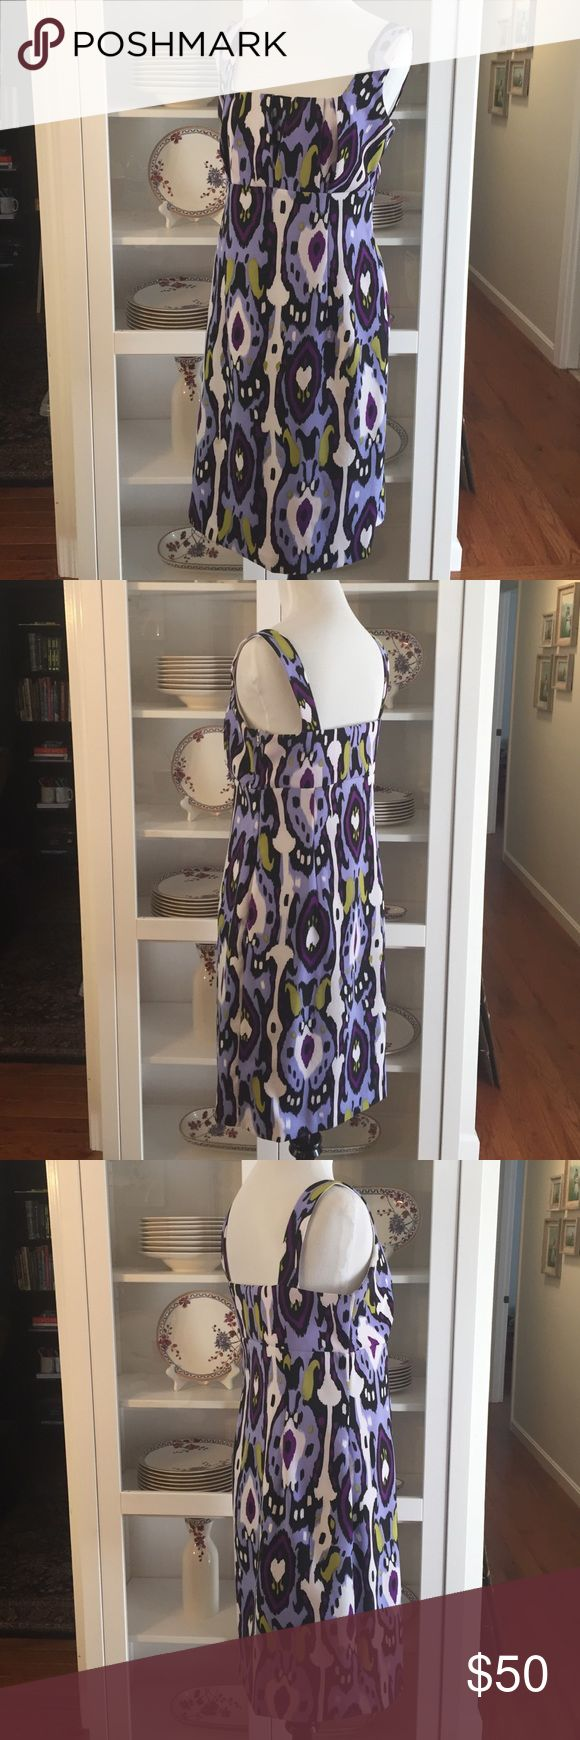 """Patterned Scarlett dress Adorable bold patterned Scarlett dress. Perfect condition, recently dry cleaned!! No tag with size, but closest to 6. Measurements are 35"""", 32"""", 40"""" Scarlett Dresses"""